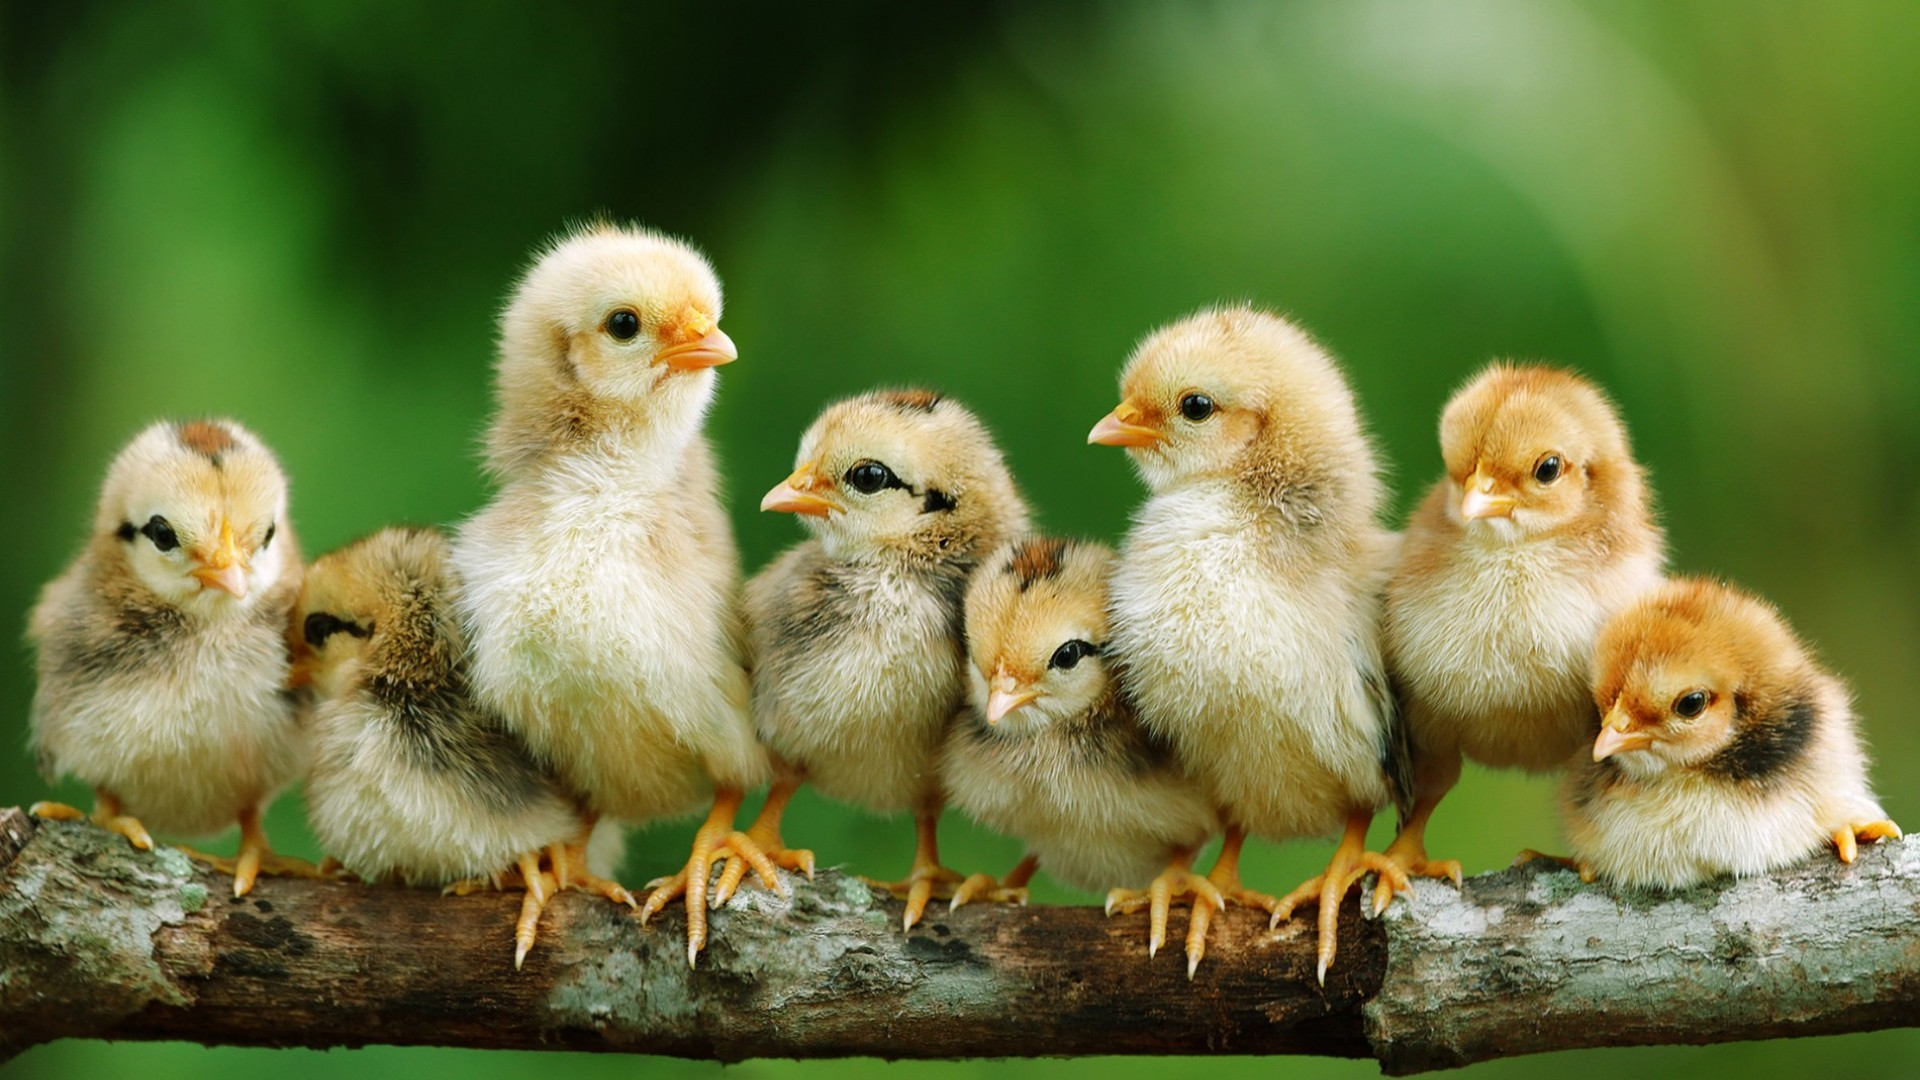 Baby Chicks Wallpaper 59 Images